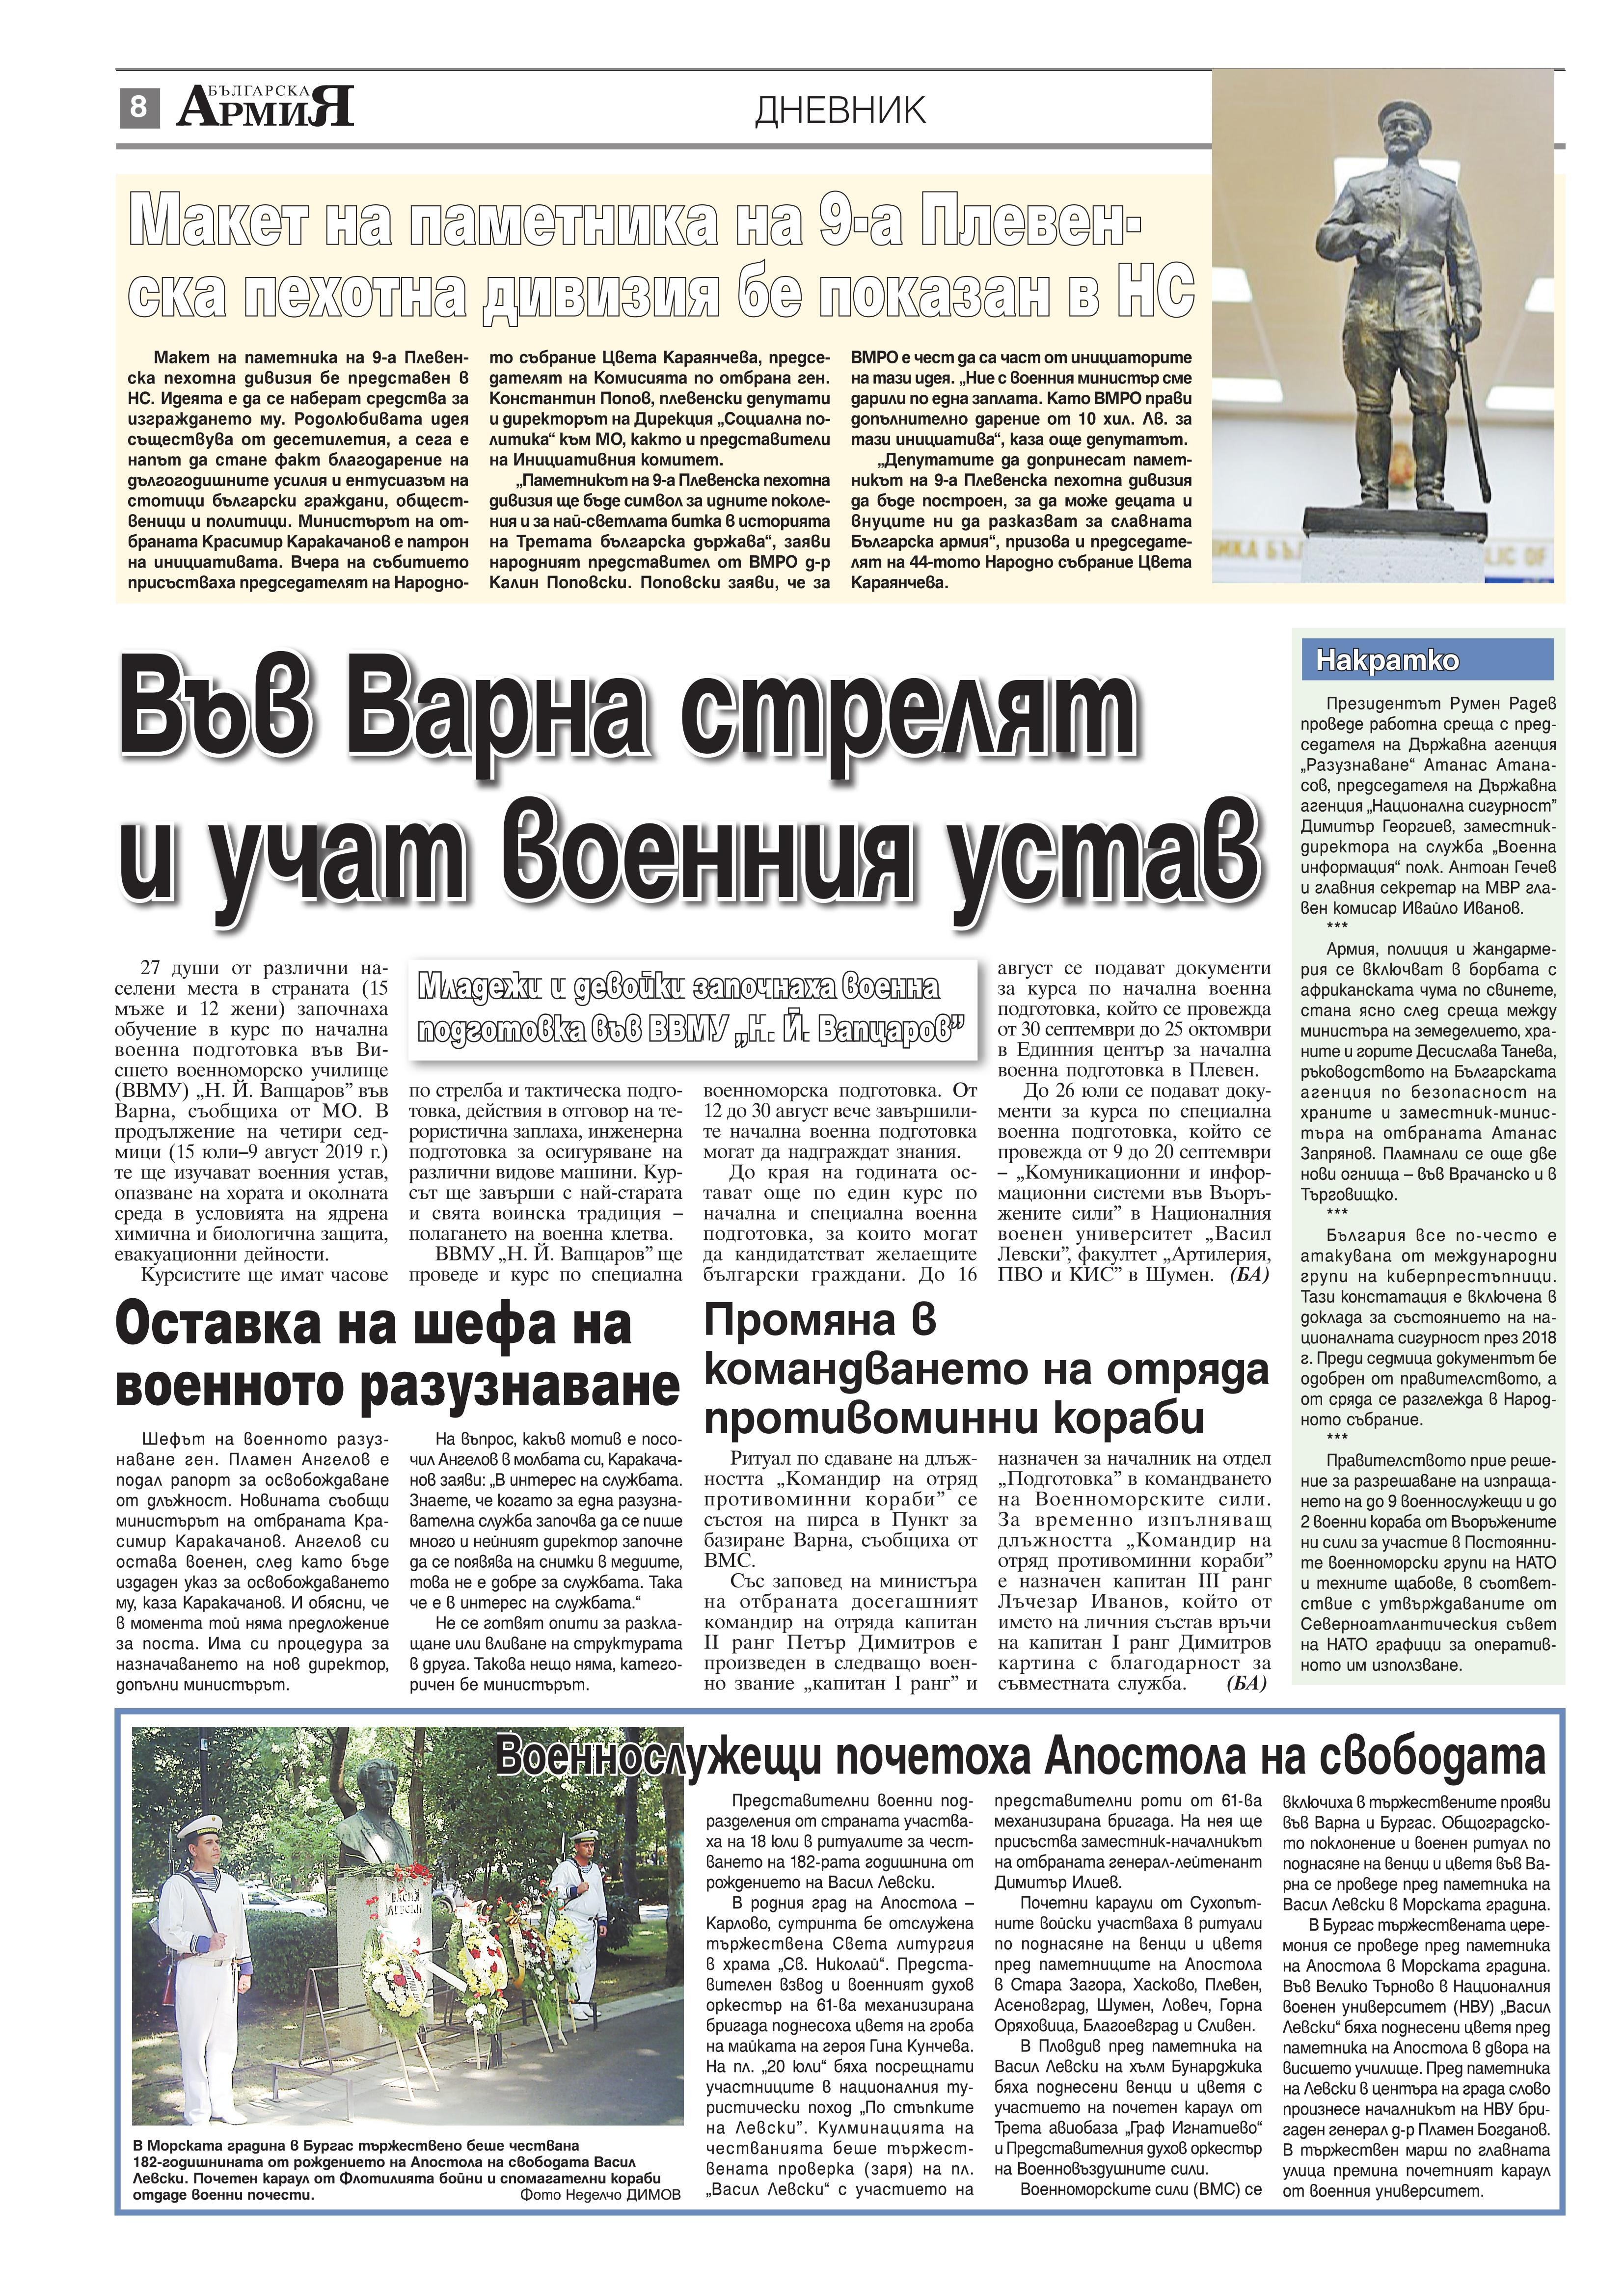 https://www.armymedia.bg/wp-content/uploads/2015/06/08.page1_-100.jpg